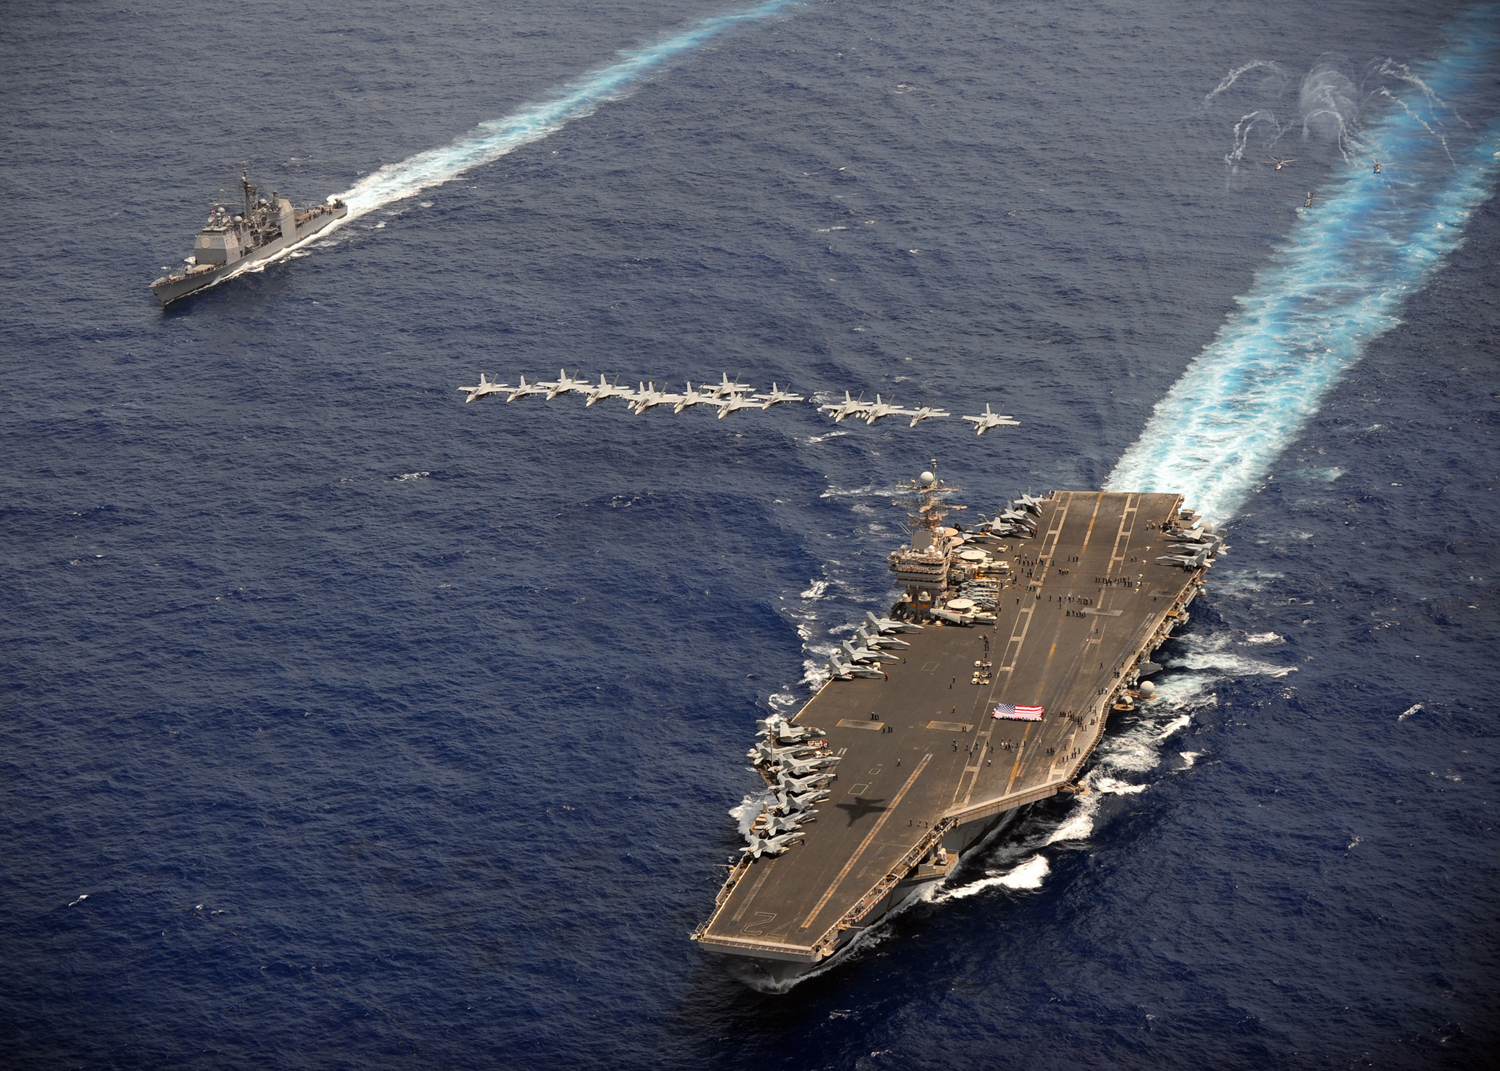 USS Abraham Lincoln, Official U.S. Navy Imagery (Licende: Attribution), portaaviones americano